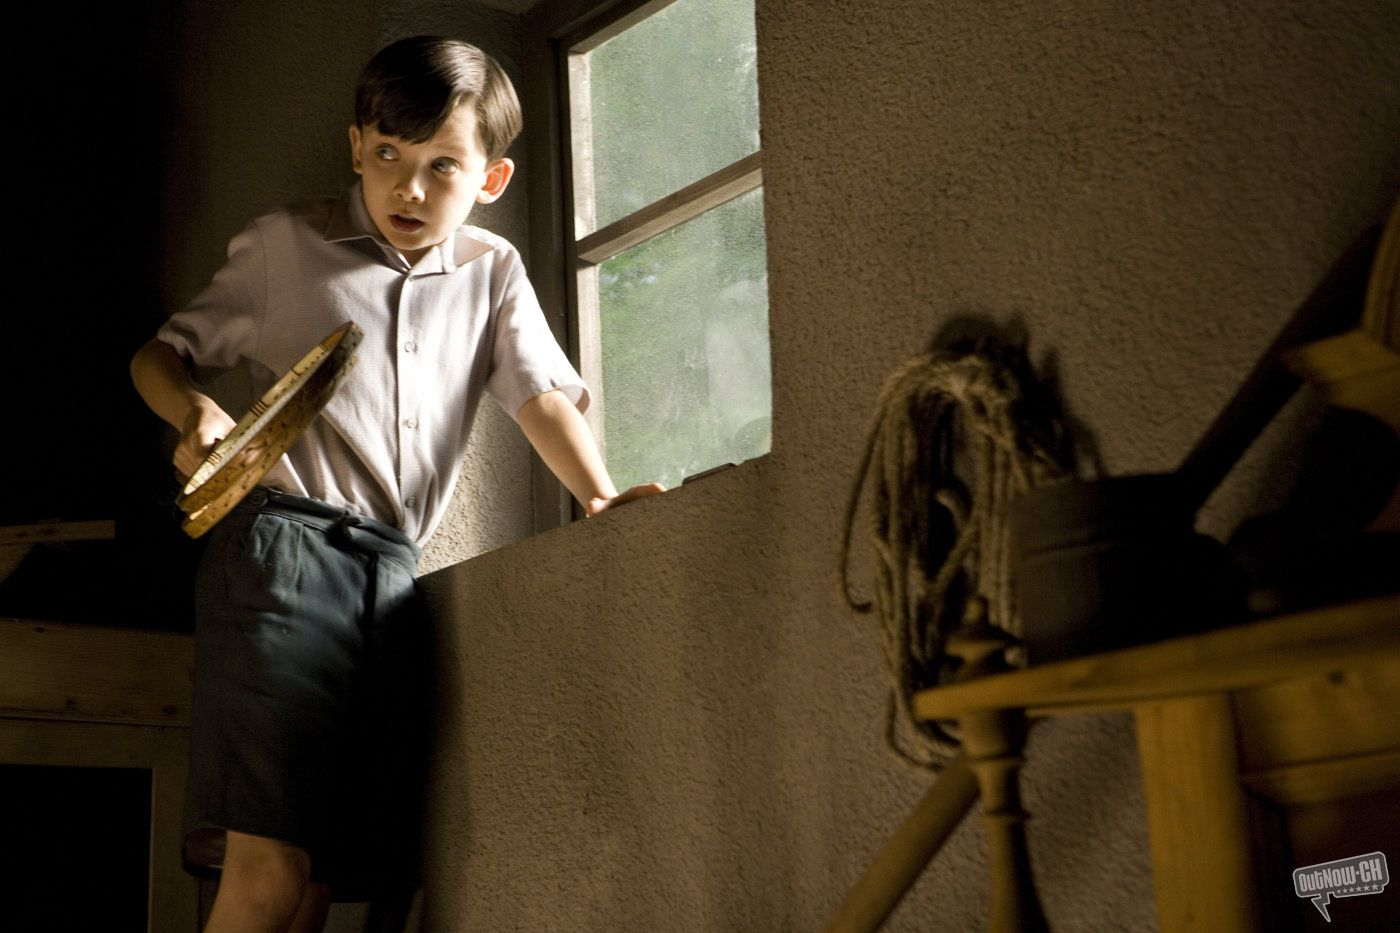 The boy in the striped pyjamas publicity still of asa butterfield the image measures 1400 933 pixels and was added on 22 june